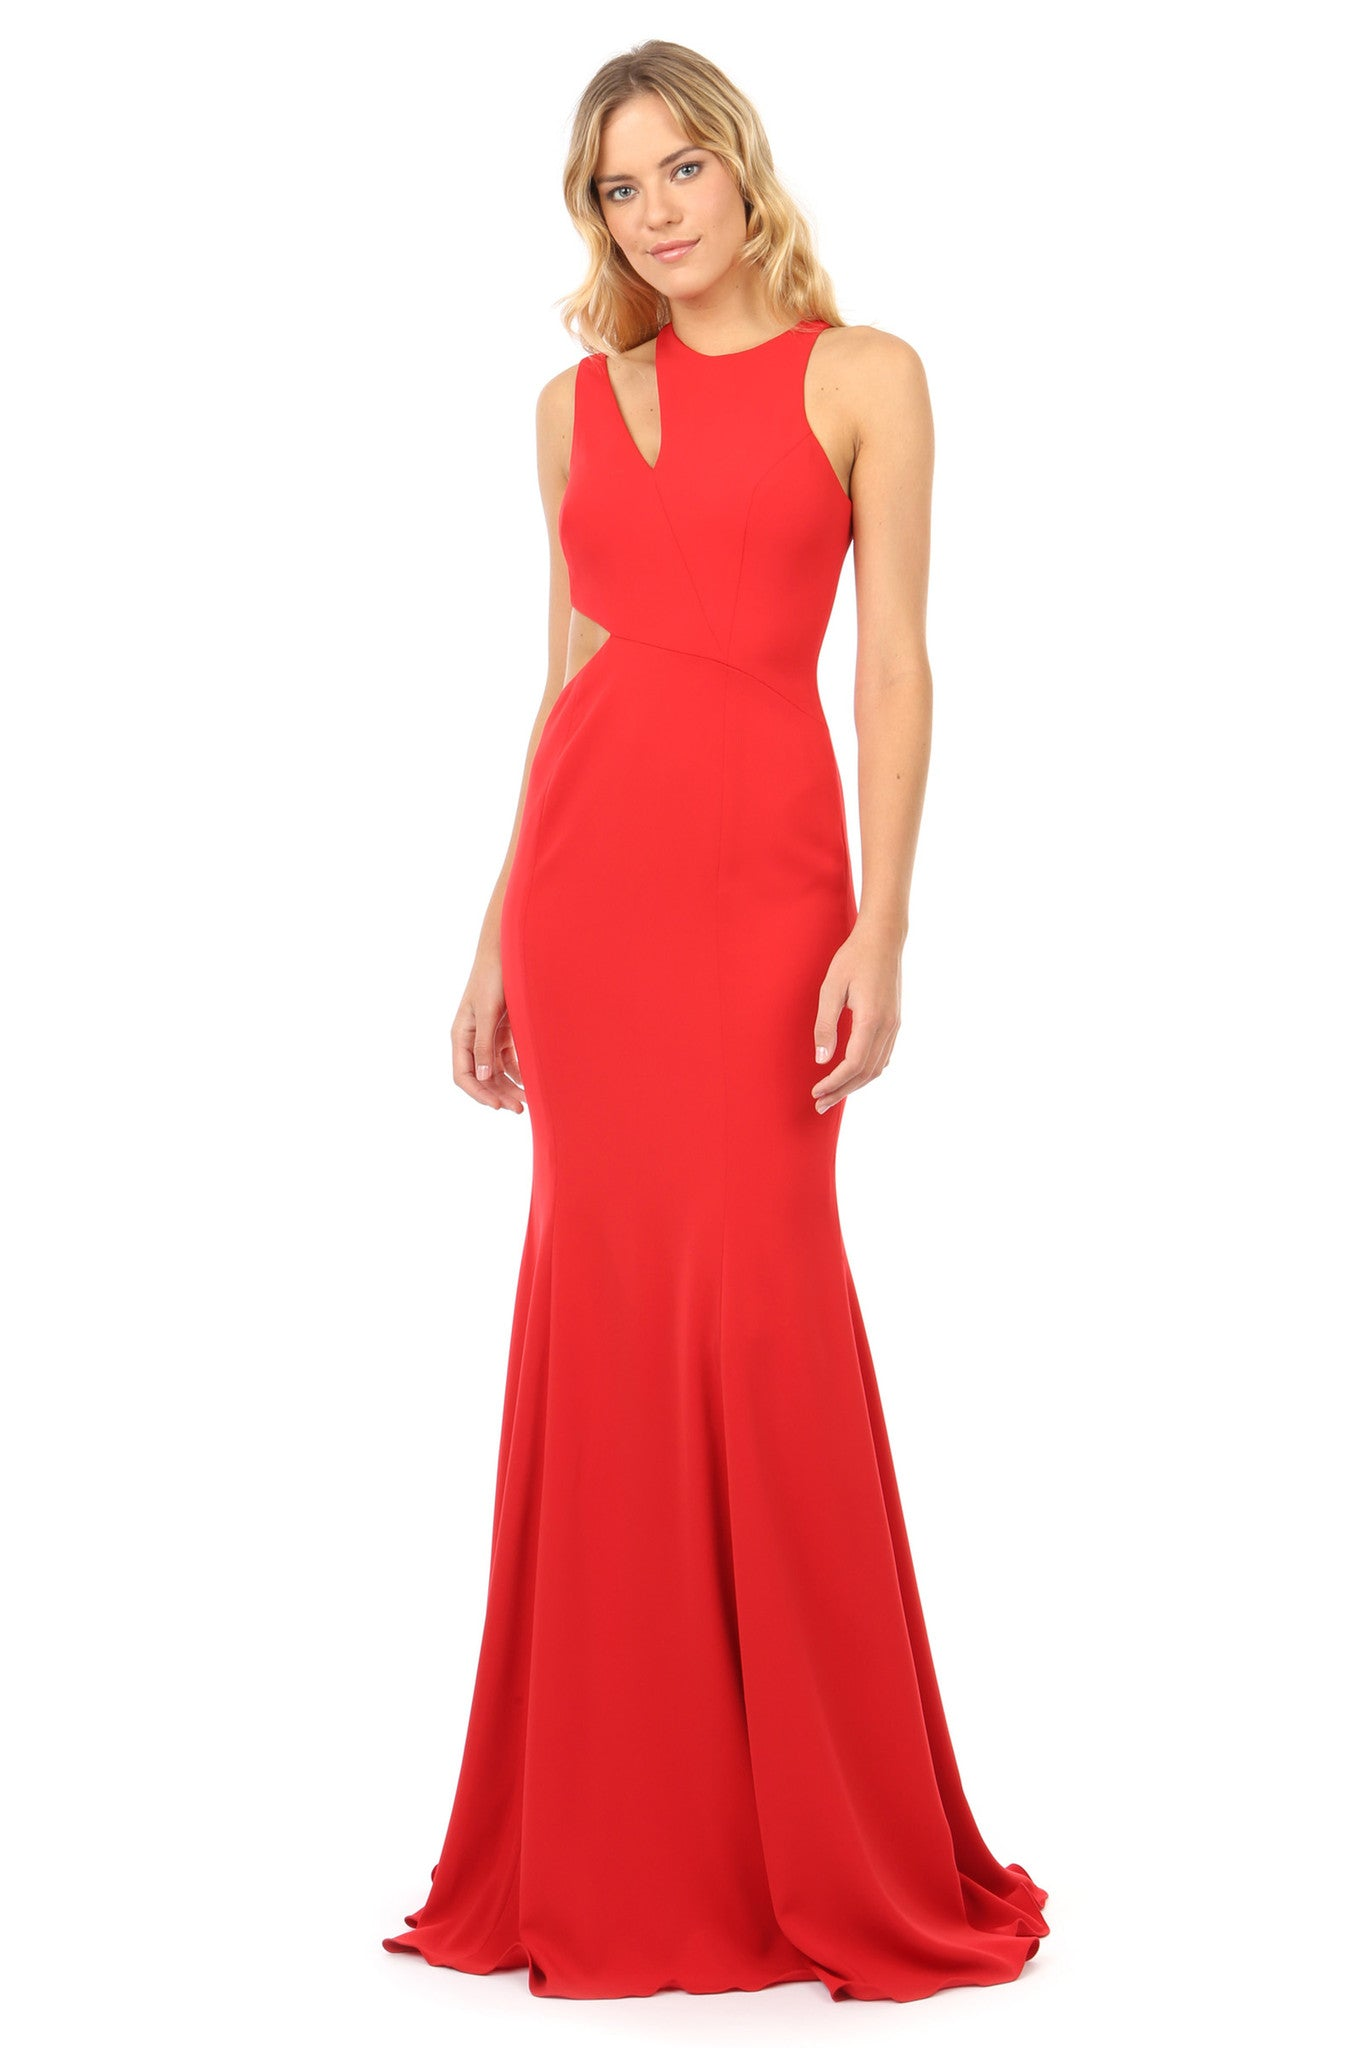 Jay Godfrey Red Cut-Out Gown - Front View